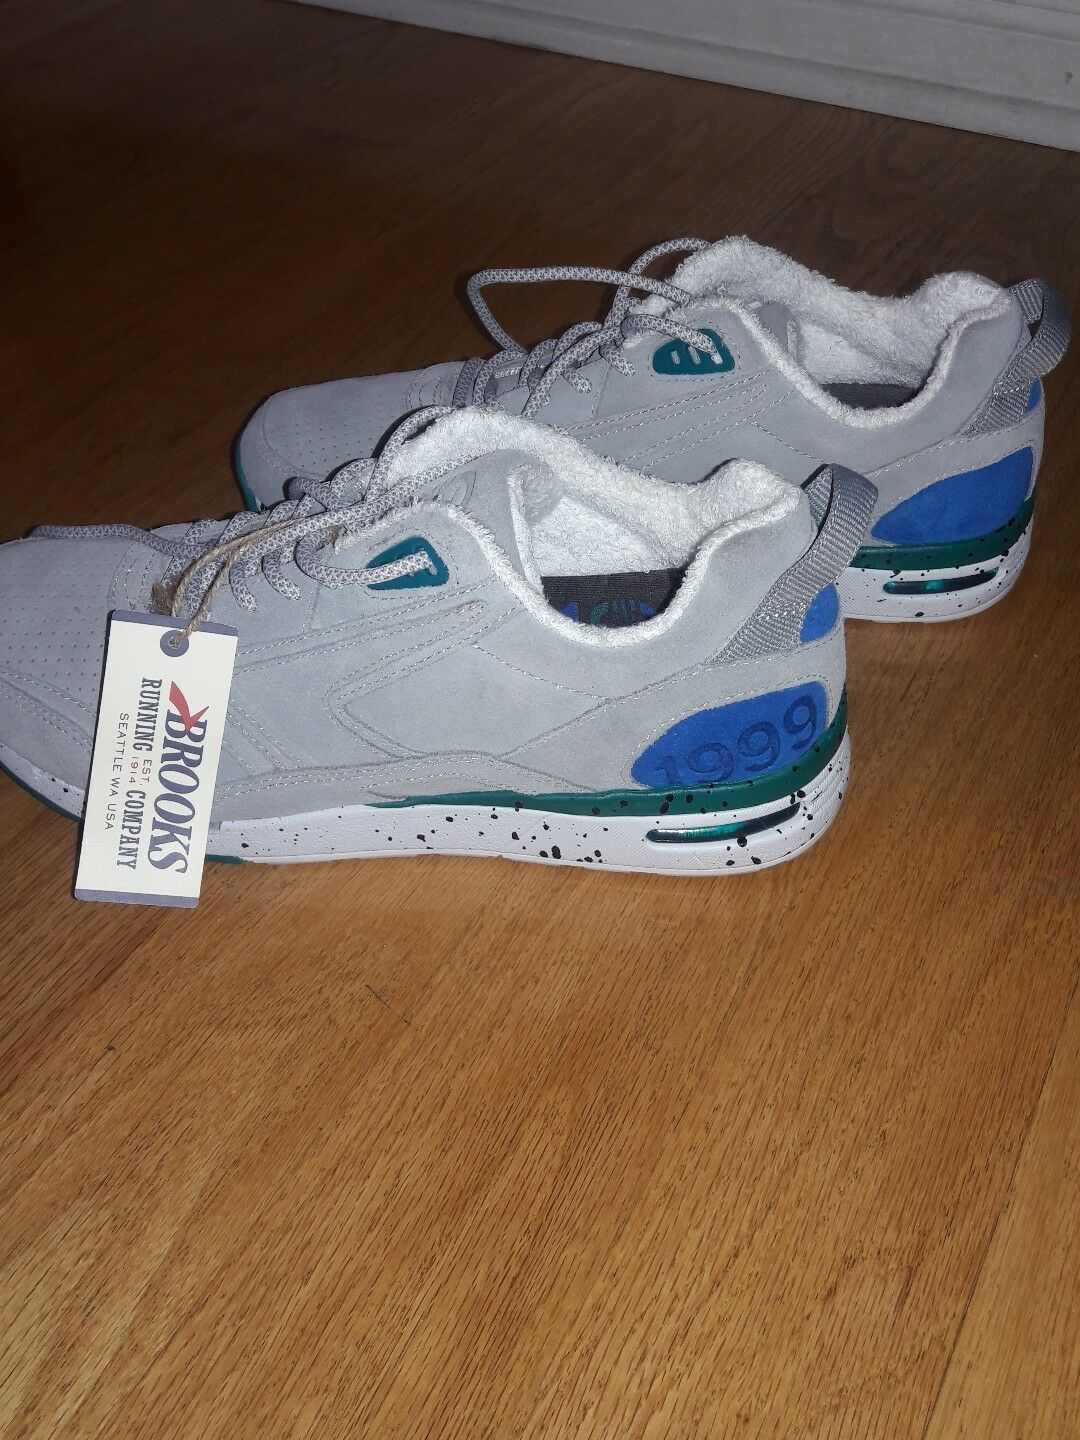 Brooks 1999 Fly Casual Shoes, Gray/Teal Size 10M